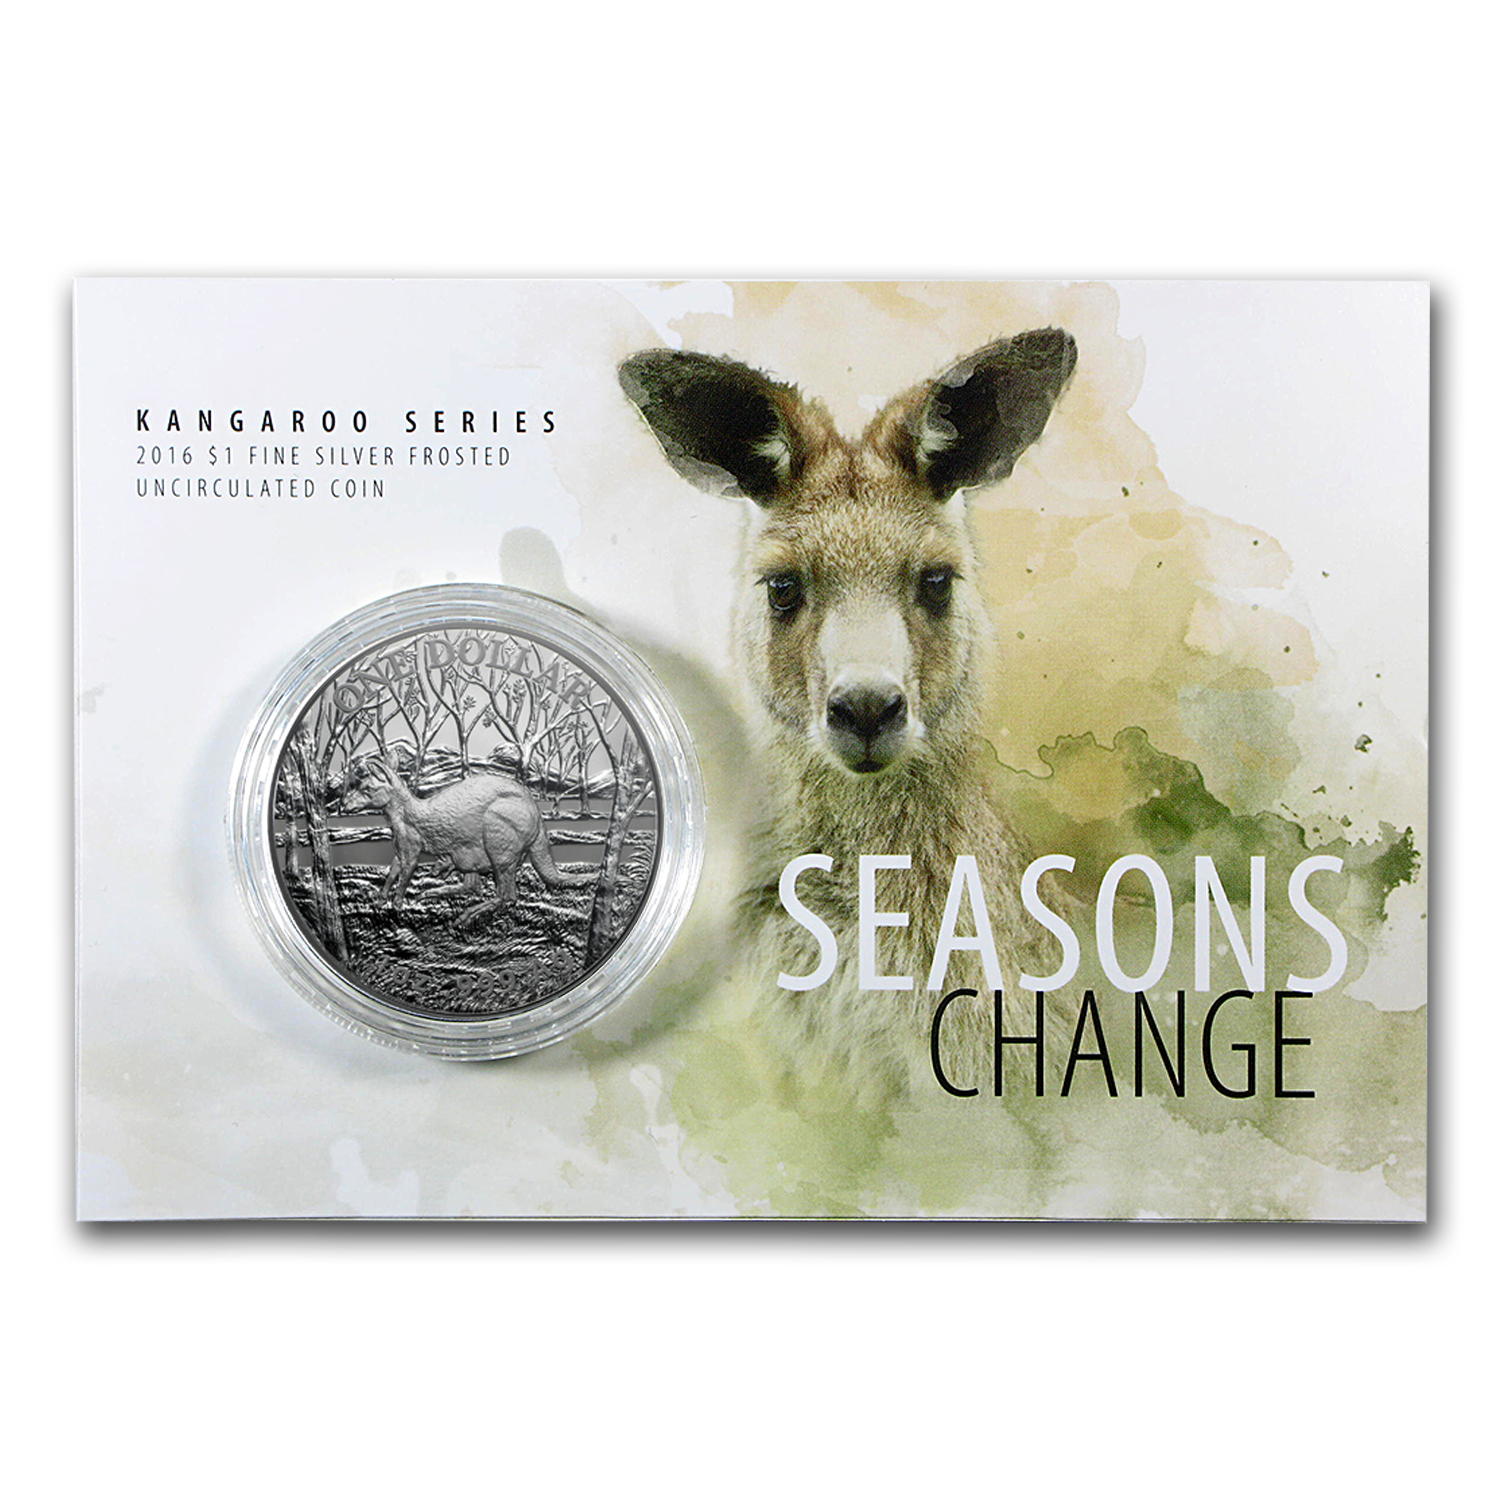 2016 Australia 1 oz Silver Kangaroo (Display Card)